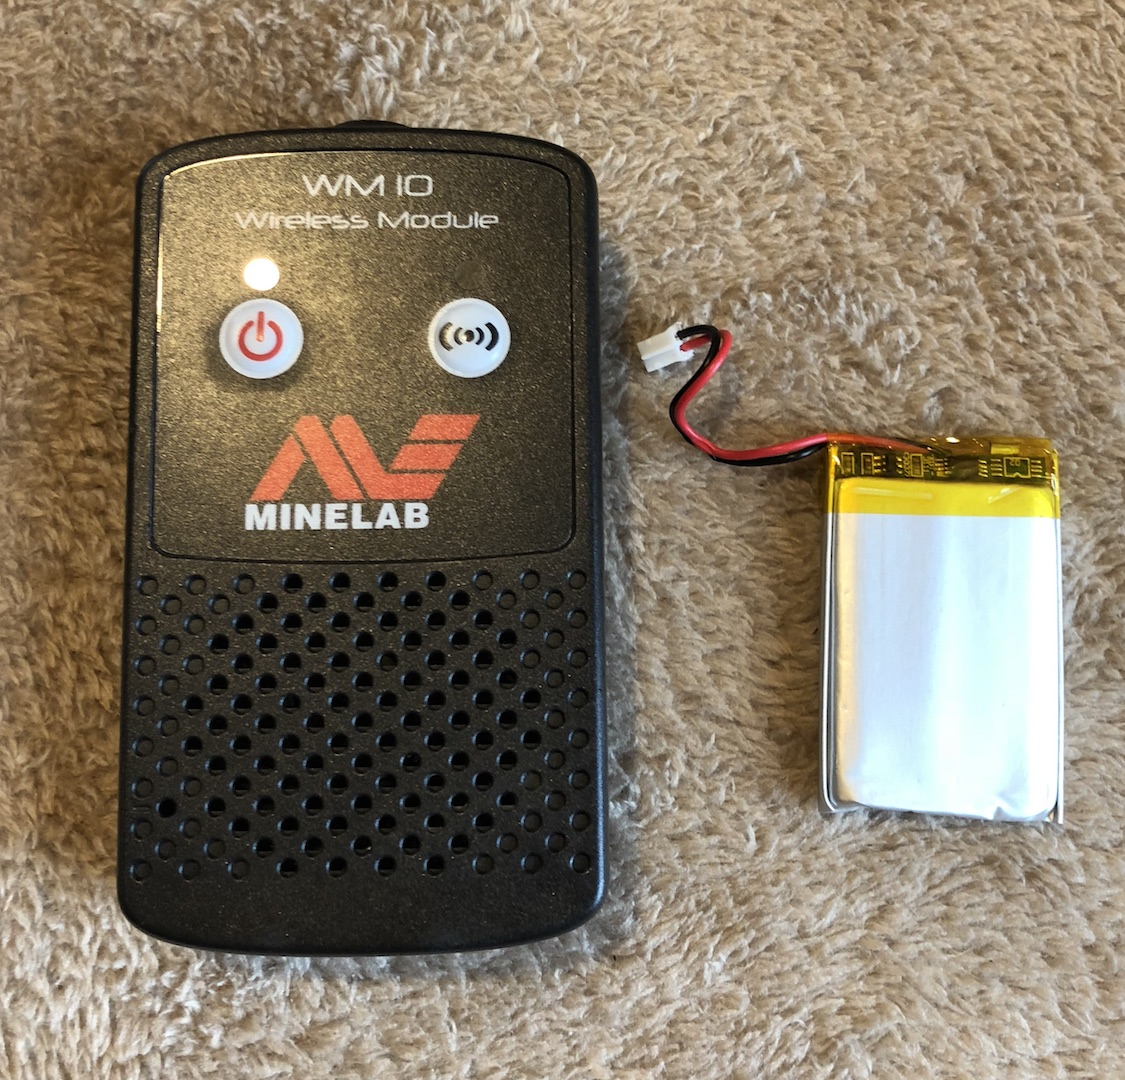 Minelab WM10 and WM12 Aftermarket Replacement Battery